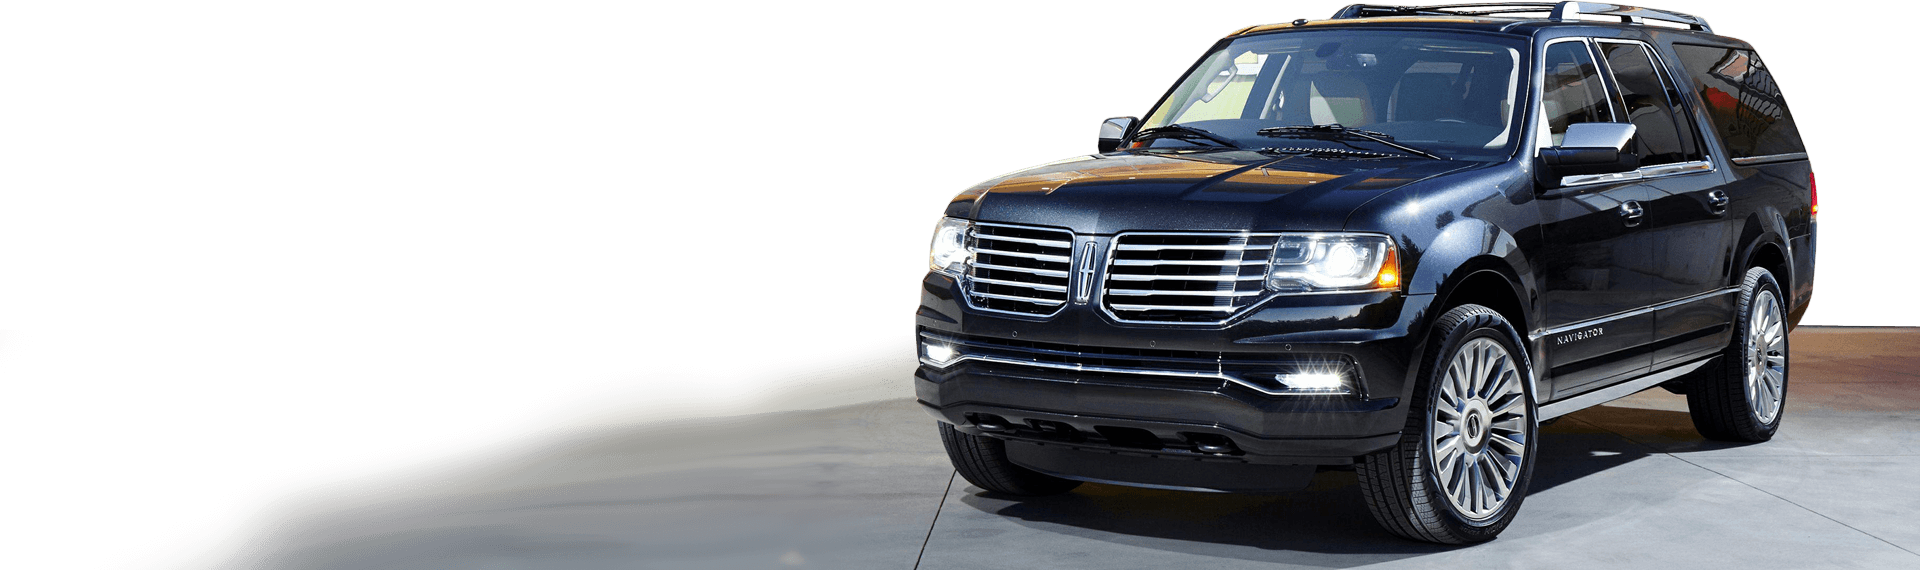 Reliant Transportation Service Pittsburgh Affordable Car Service